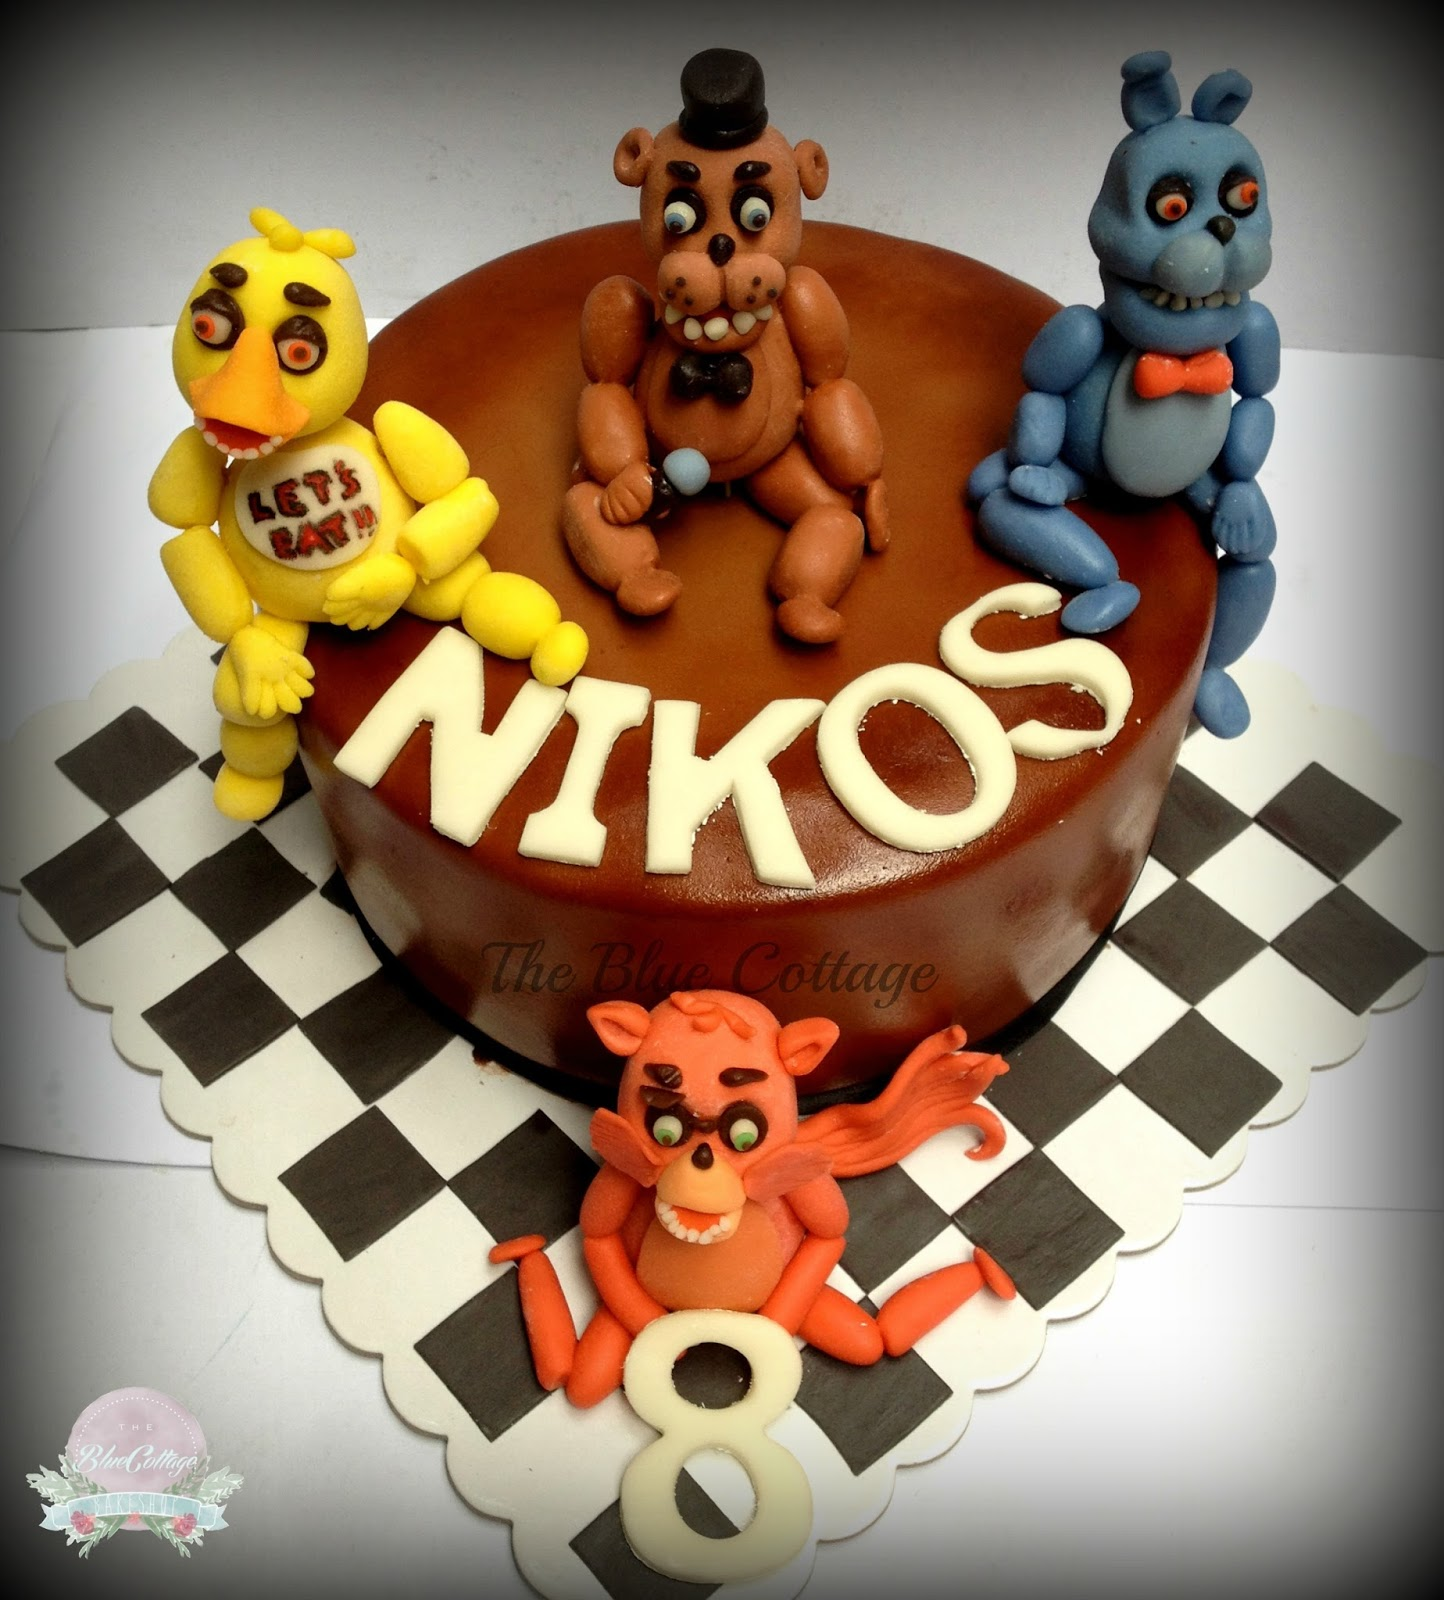 The Blue Cottage Birthday Cake Five Nights At Freddy S